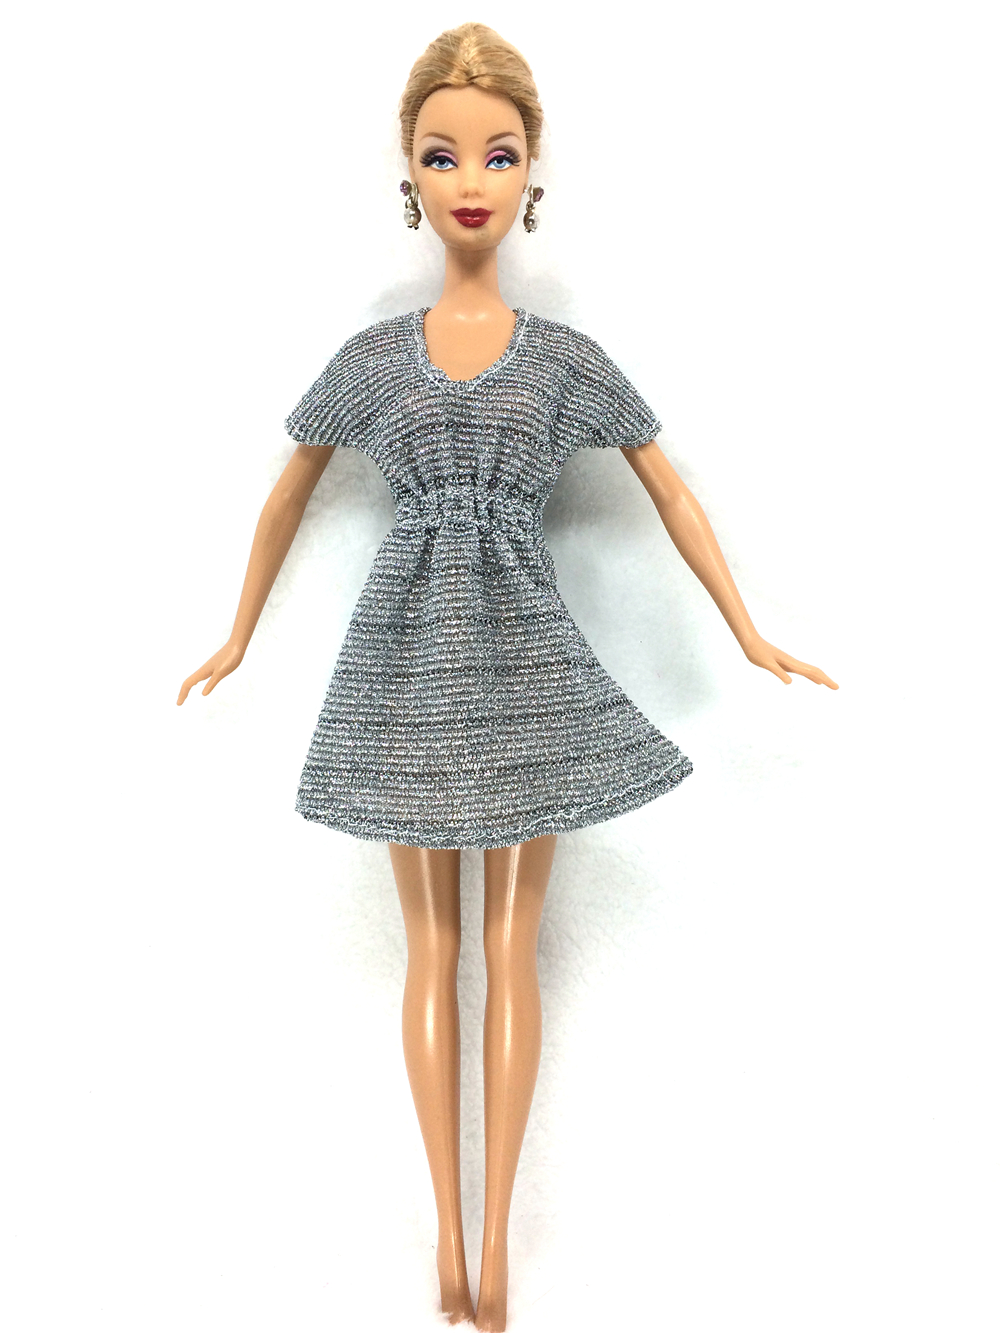 NK 2017 Newest Doll Dress Beautiful Handmade Party ClothesTop Fashion Dress For Barbie Noble Doll Best Child Girls'Gift 059B майка для девочки 28614 059 розовый noble people